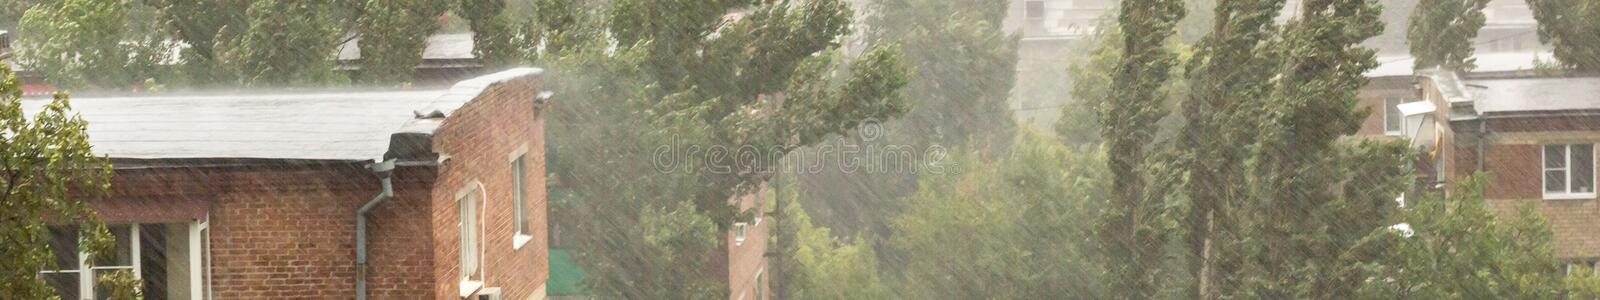 banner of Heavy rain, trees, wire and residential house in the village stock image